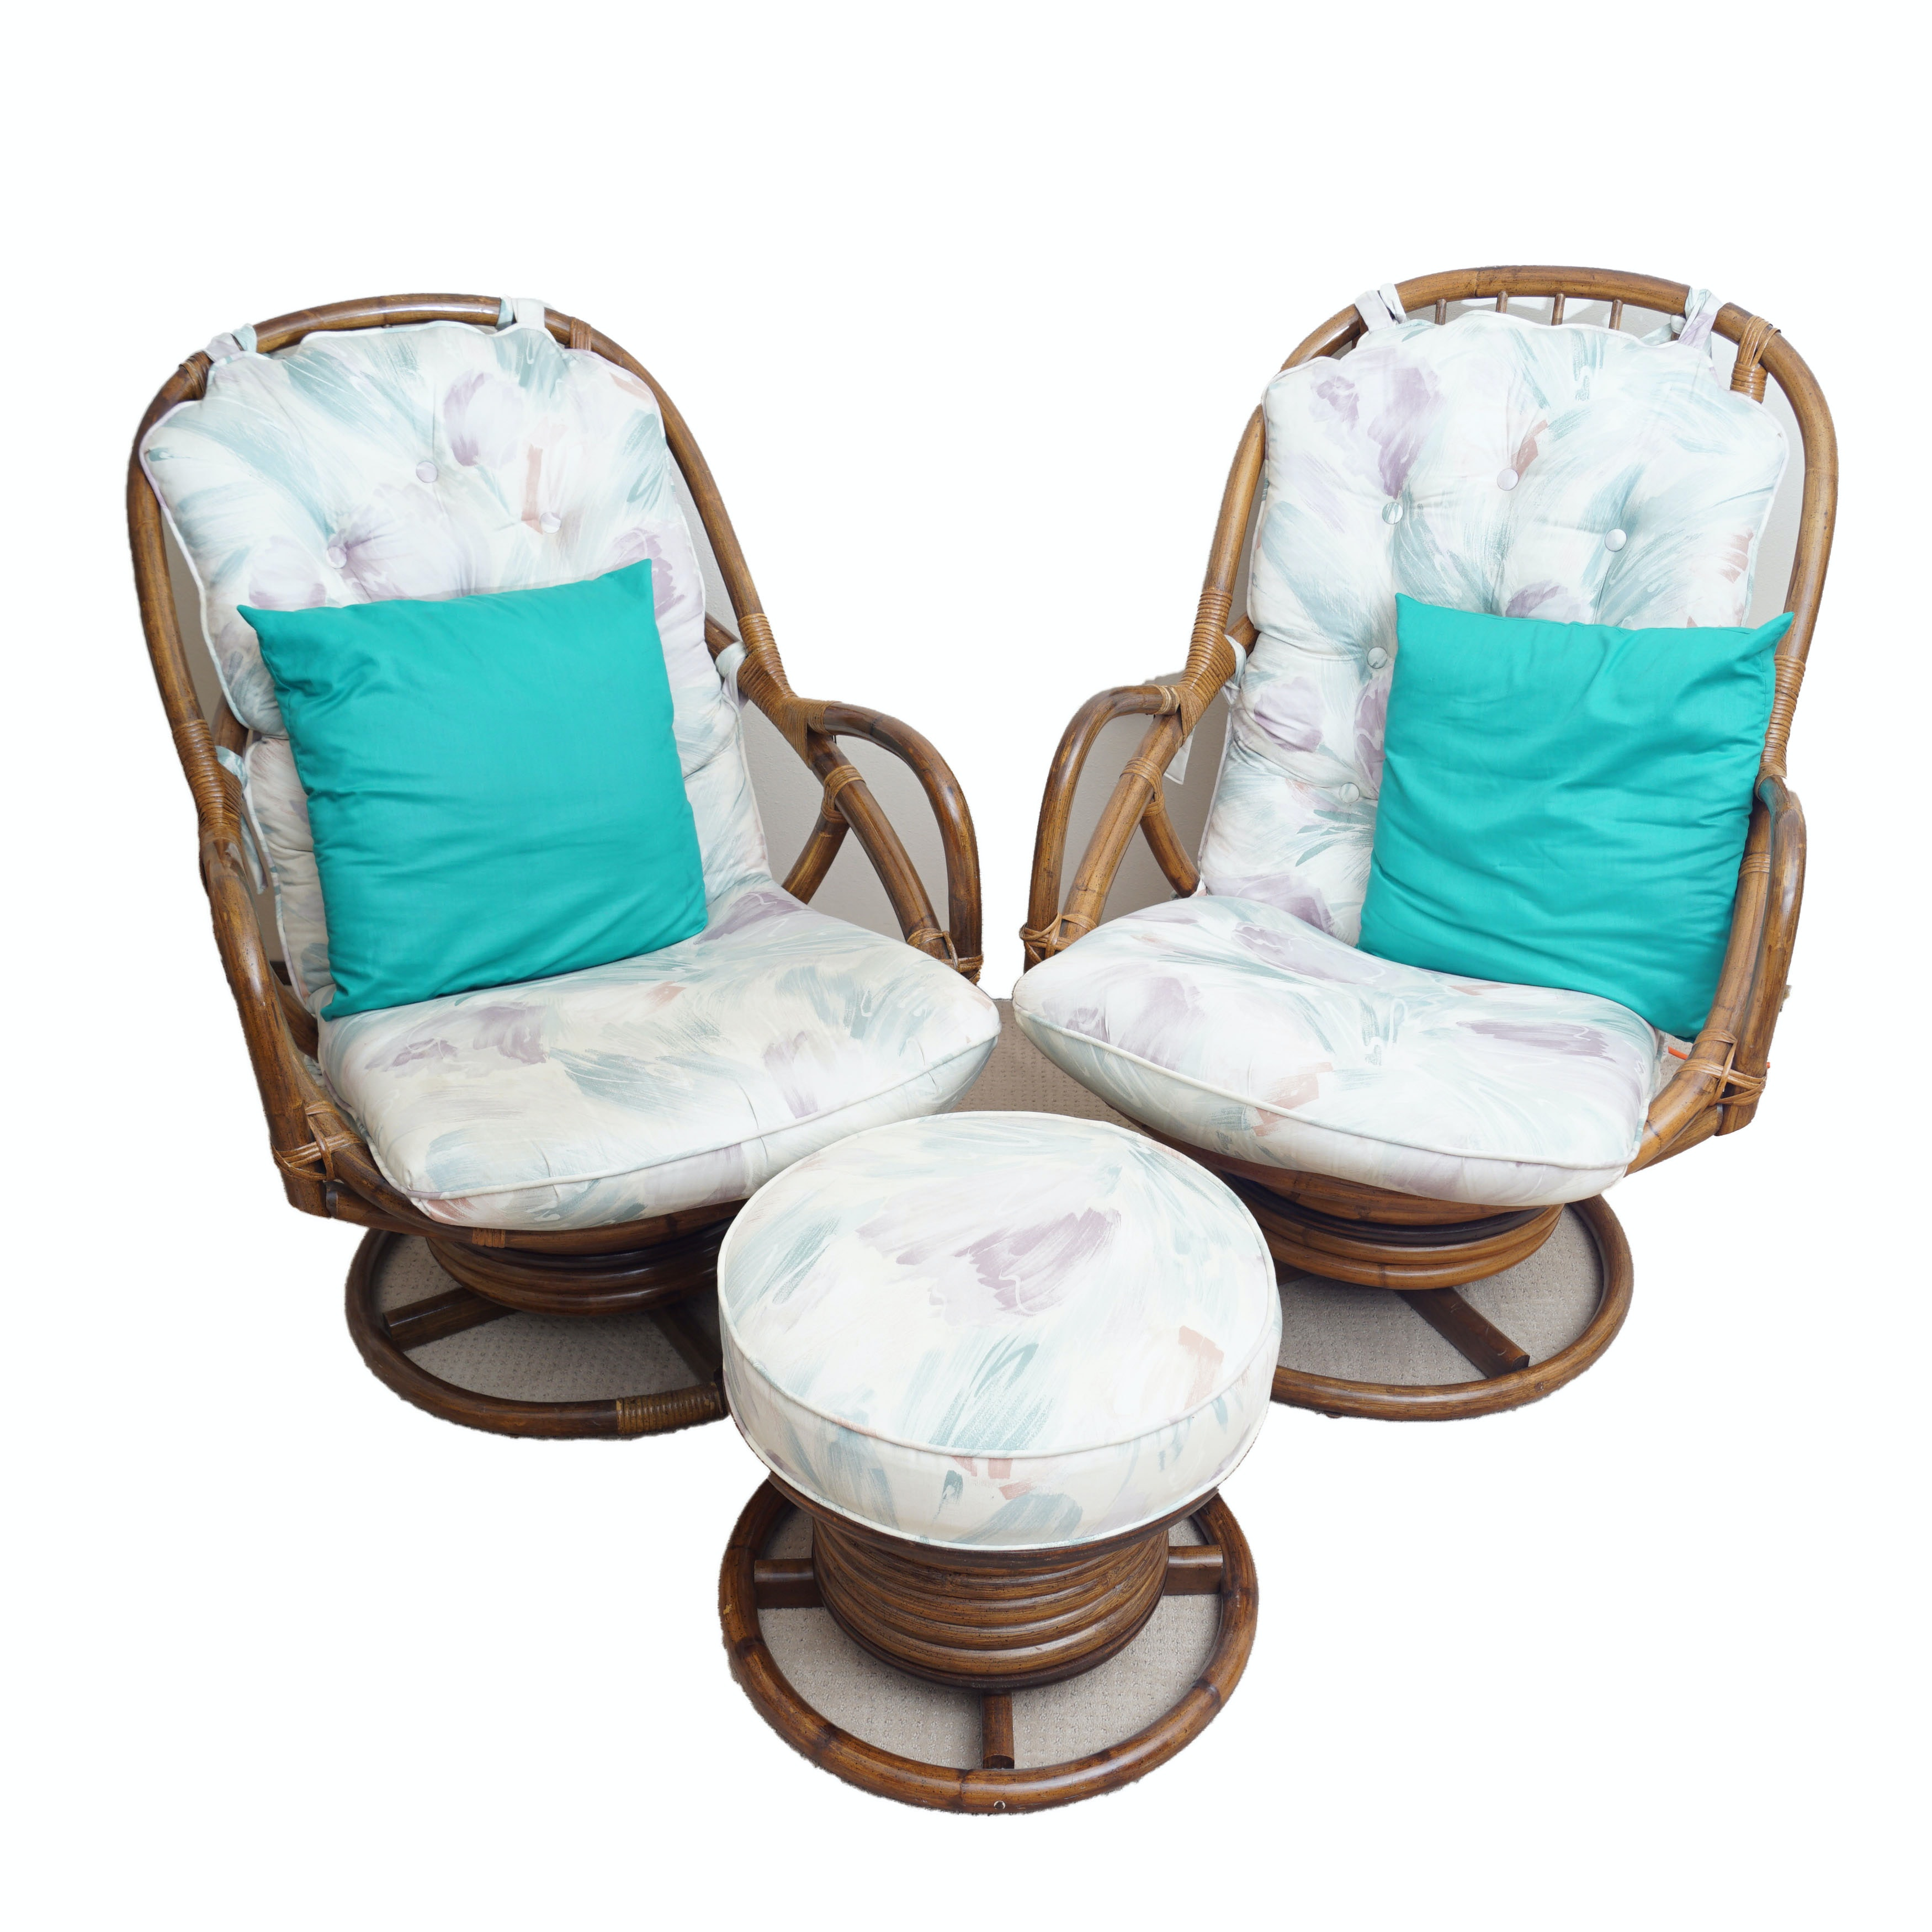 Pair Of Rattan Swivel Chairs With Ottoman ...